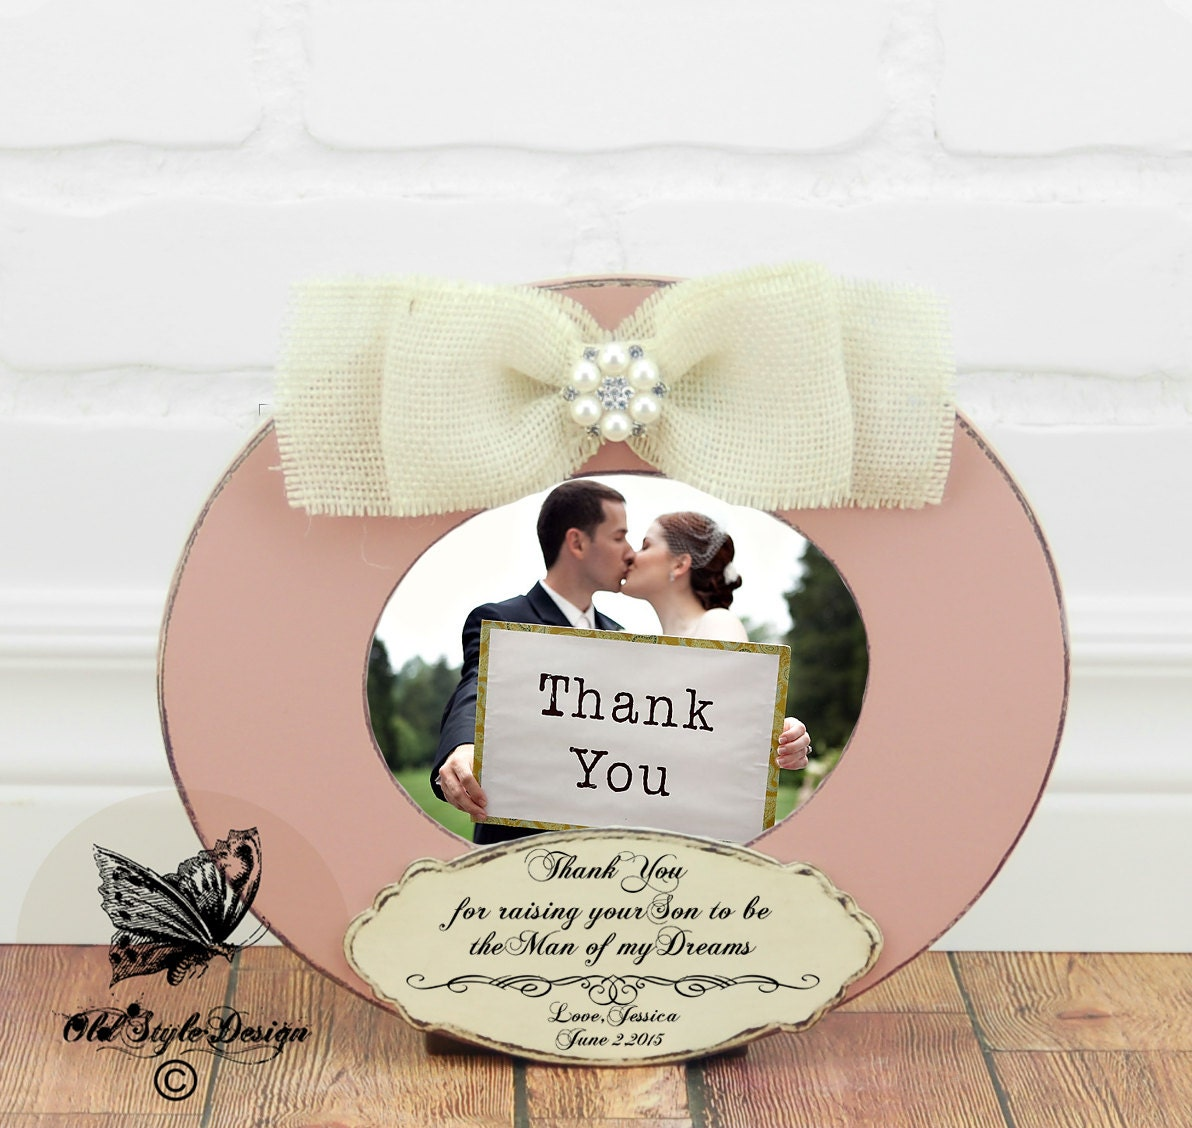 Gifts For Parents Wedding Thank You: Parents Thank You Gift Parents Wedding Gift Parents Of The